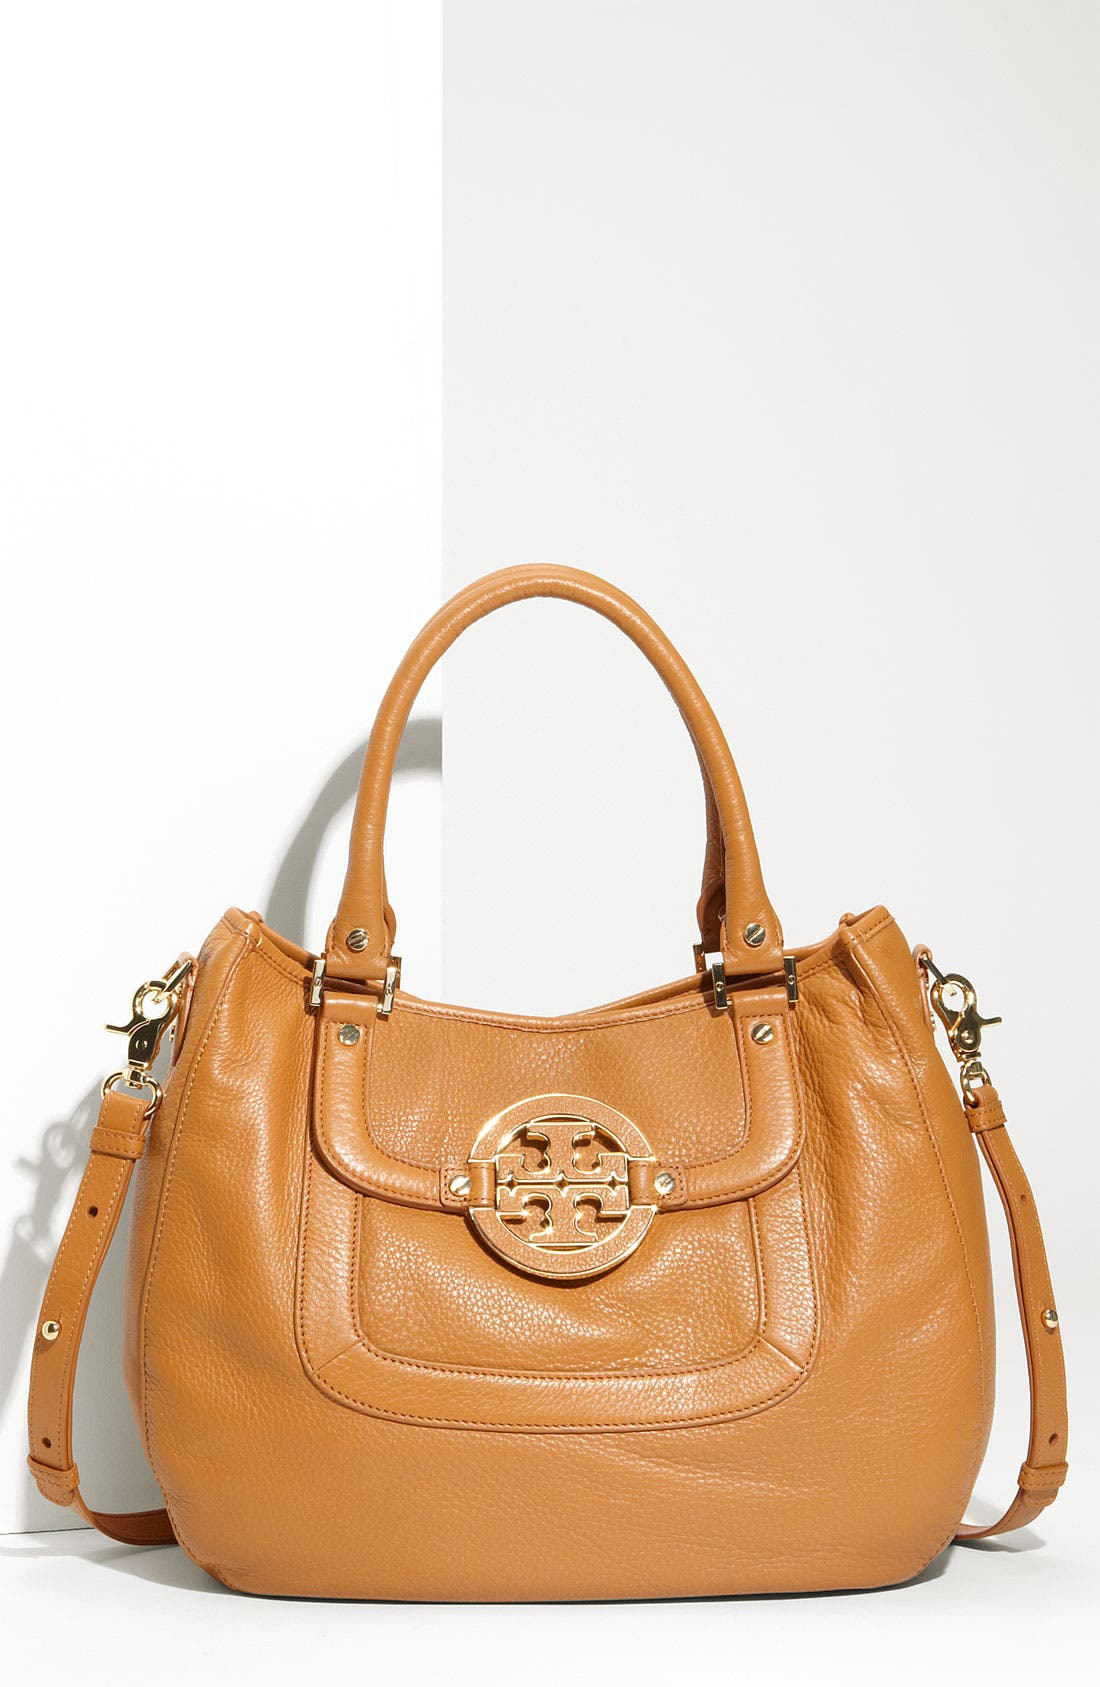 Alternate Image 1 Selected - Tory Burch 'Amanda' Leather Hobo